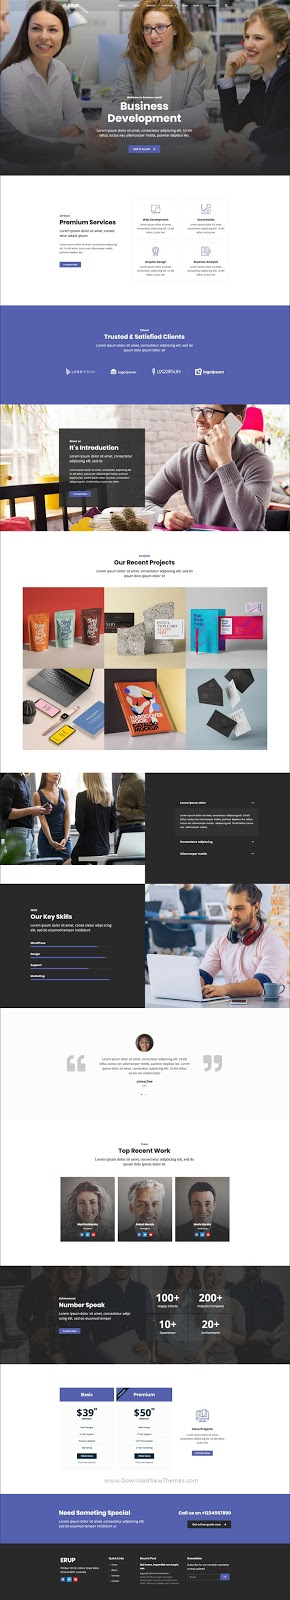 Erup - Business Template Kit